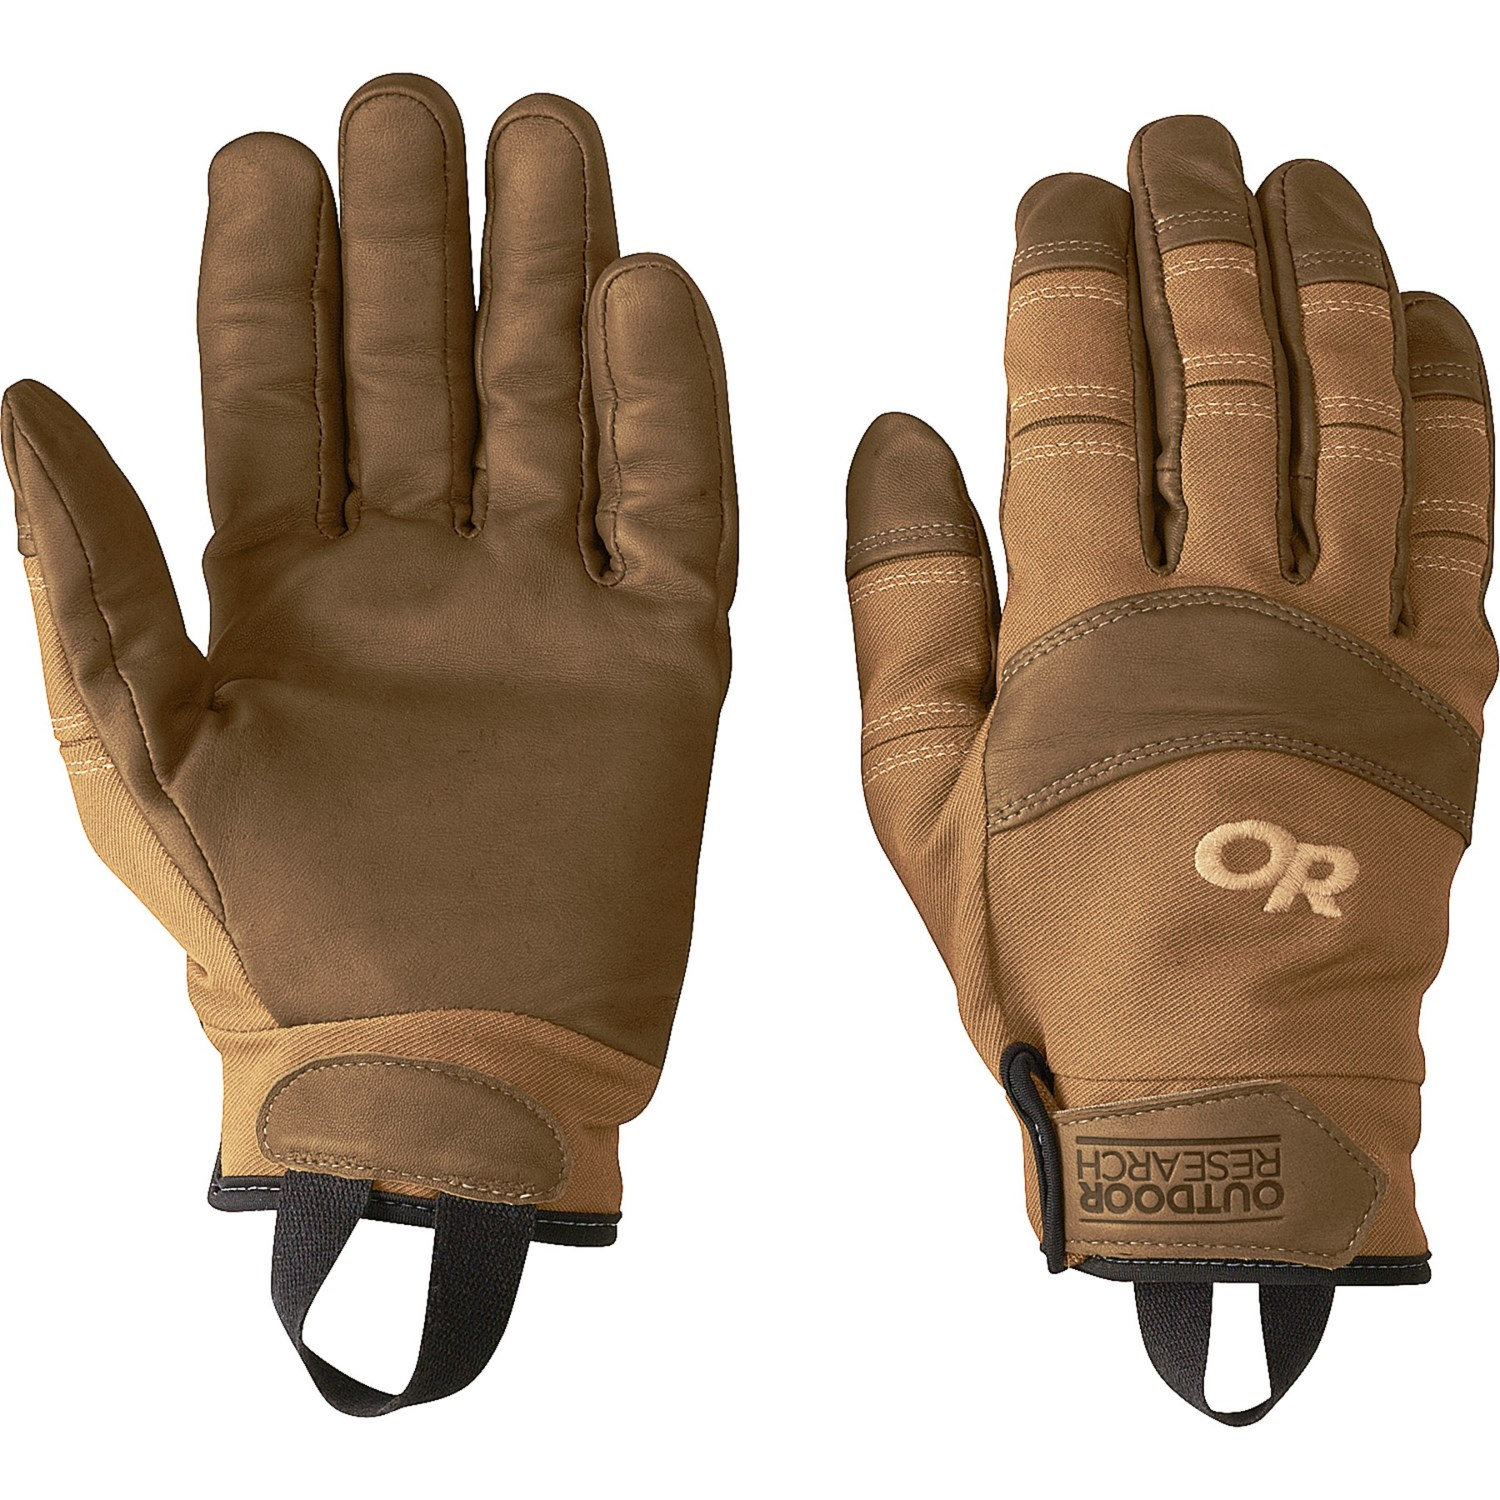 leather gloves silencer: